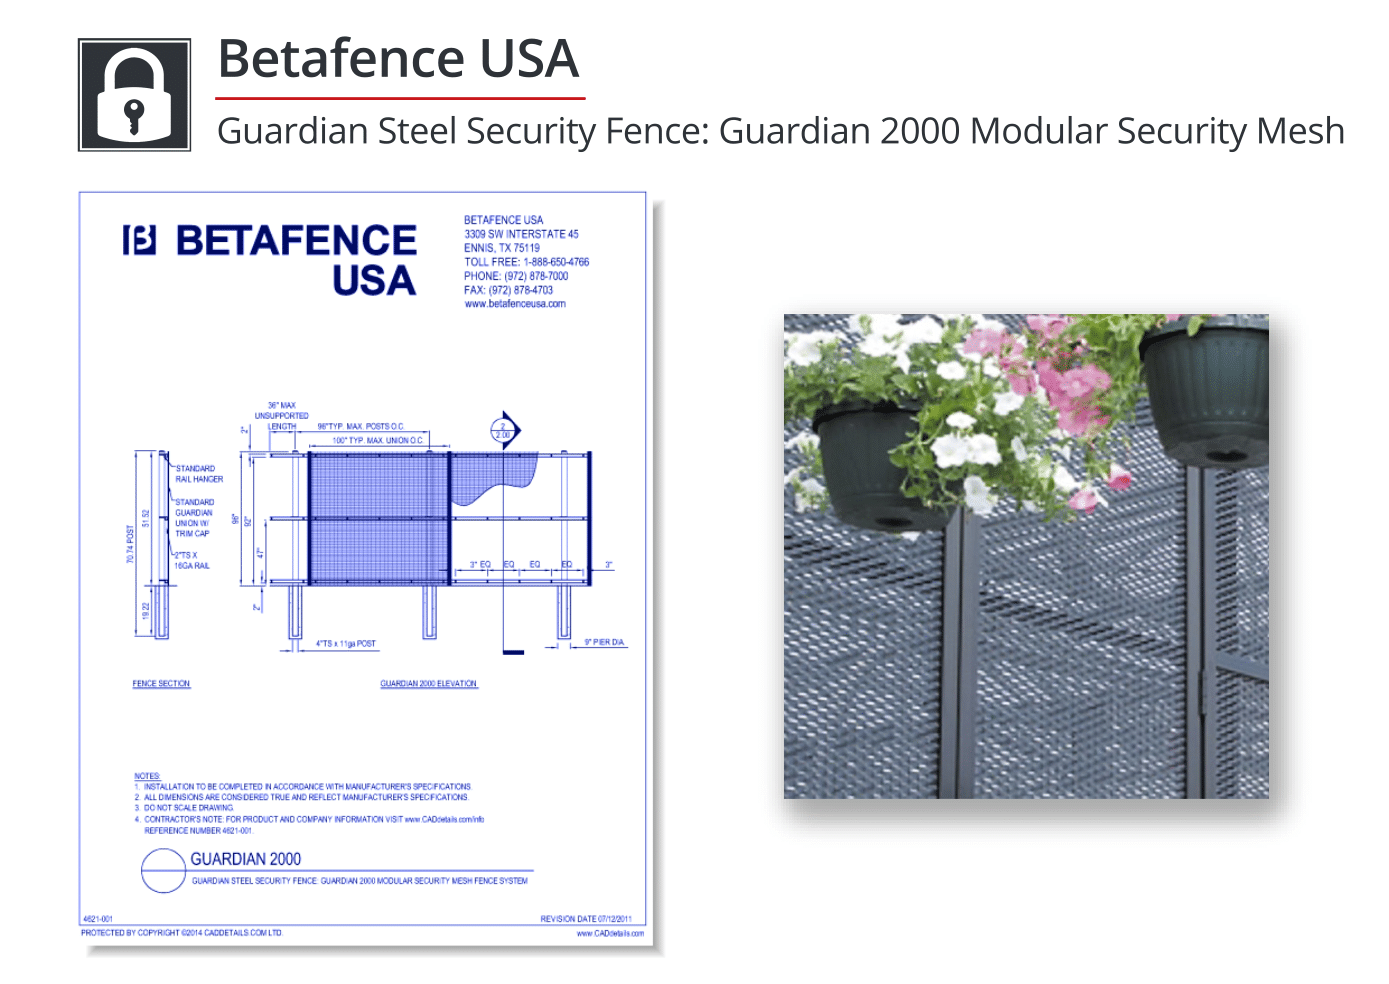 Betafence-USA-Guardian-Steel-Security-Fence-CADdrawing.png